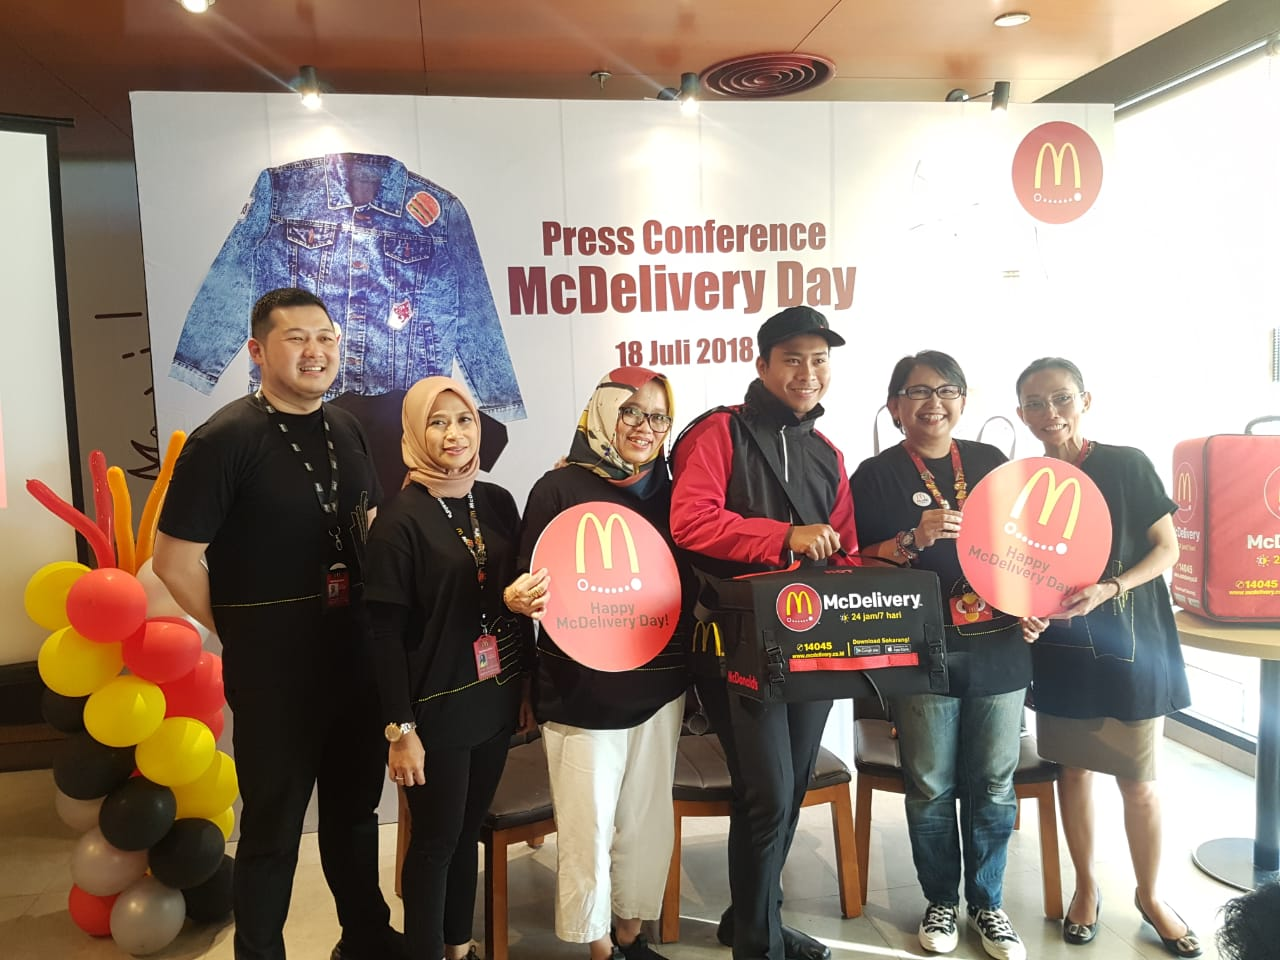 syarat mcdelivery day 19 juli mcdonald's